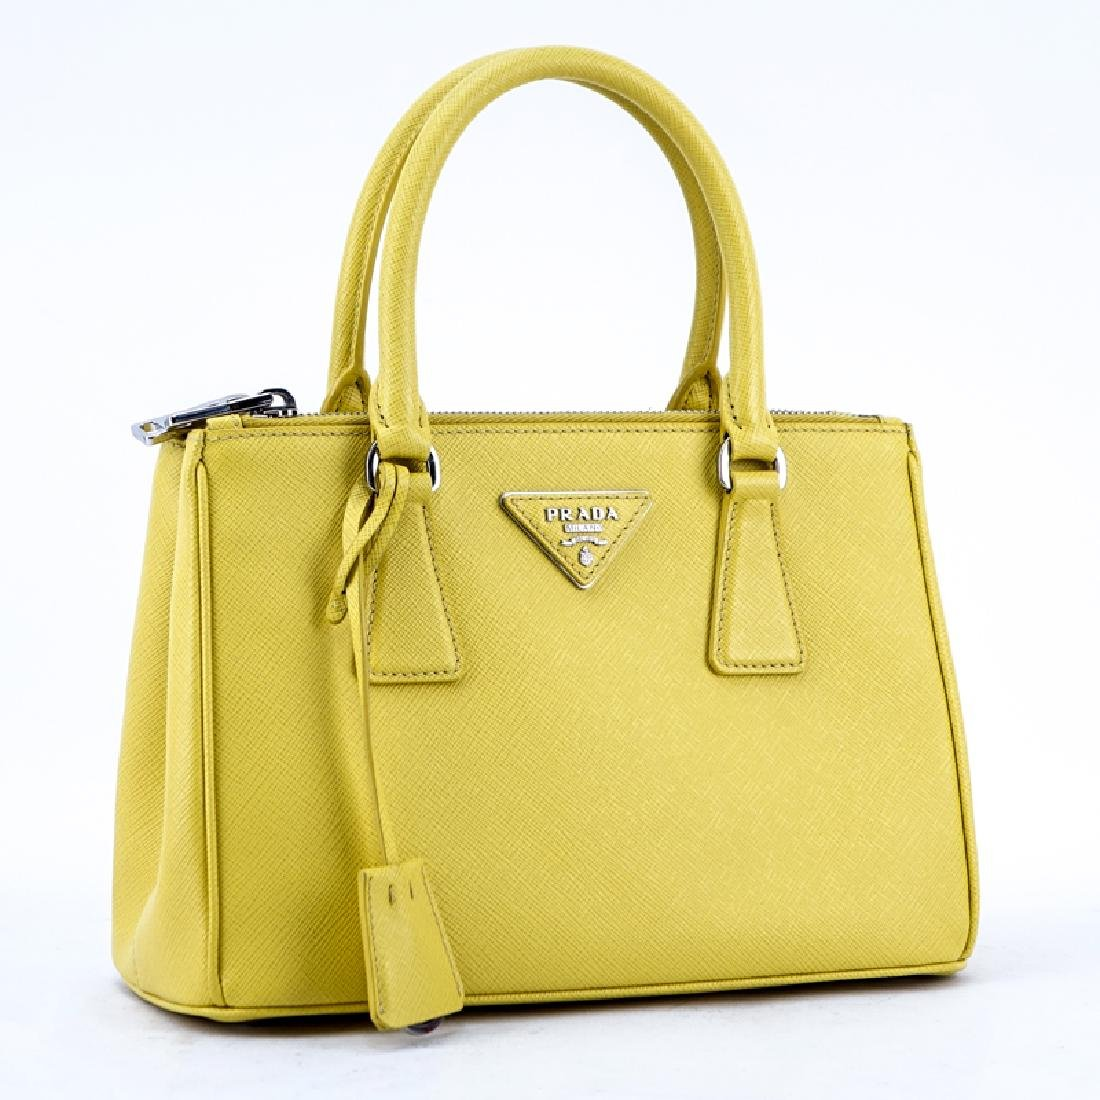 Prada Yellow Small Grained Leather Saffiano Lux